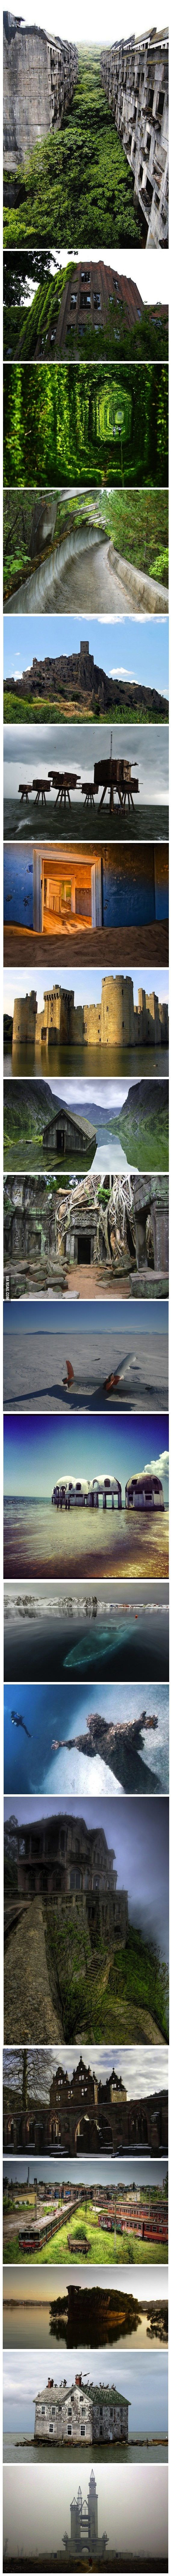 The 20 most awesome abandoned places in the world